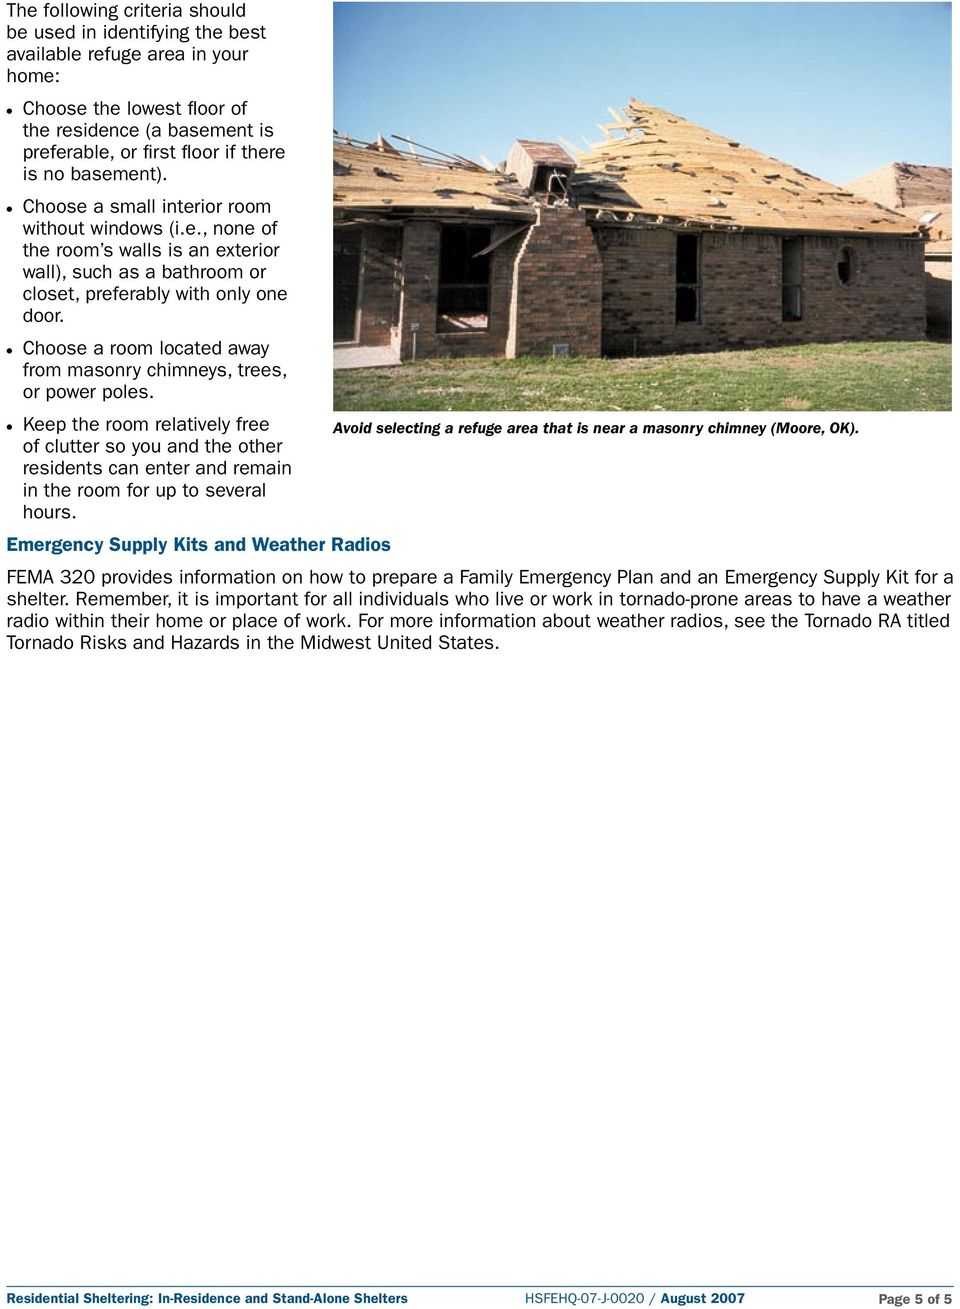 Choose a room located away from masonry chimneys, trees, or power poles.